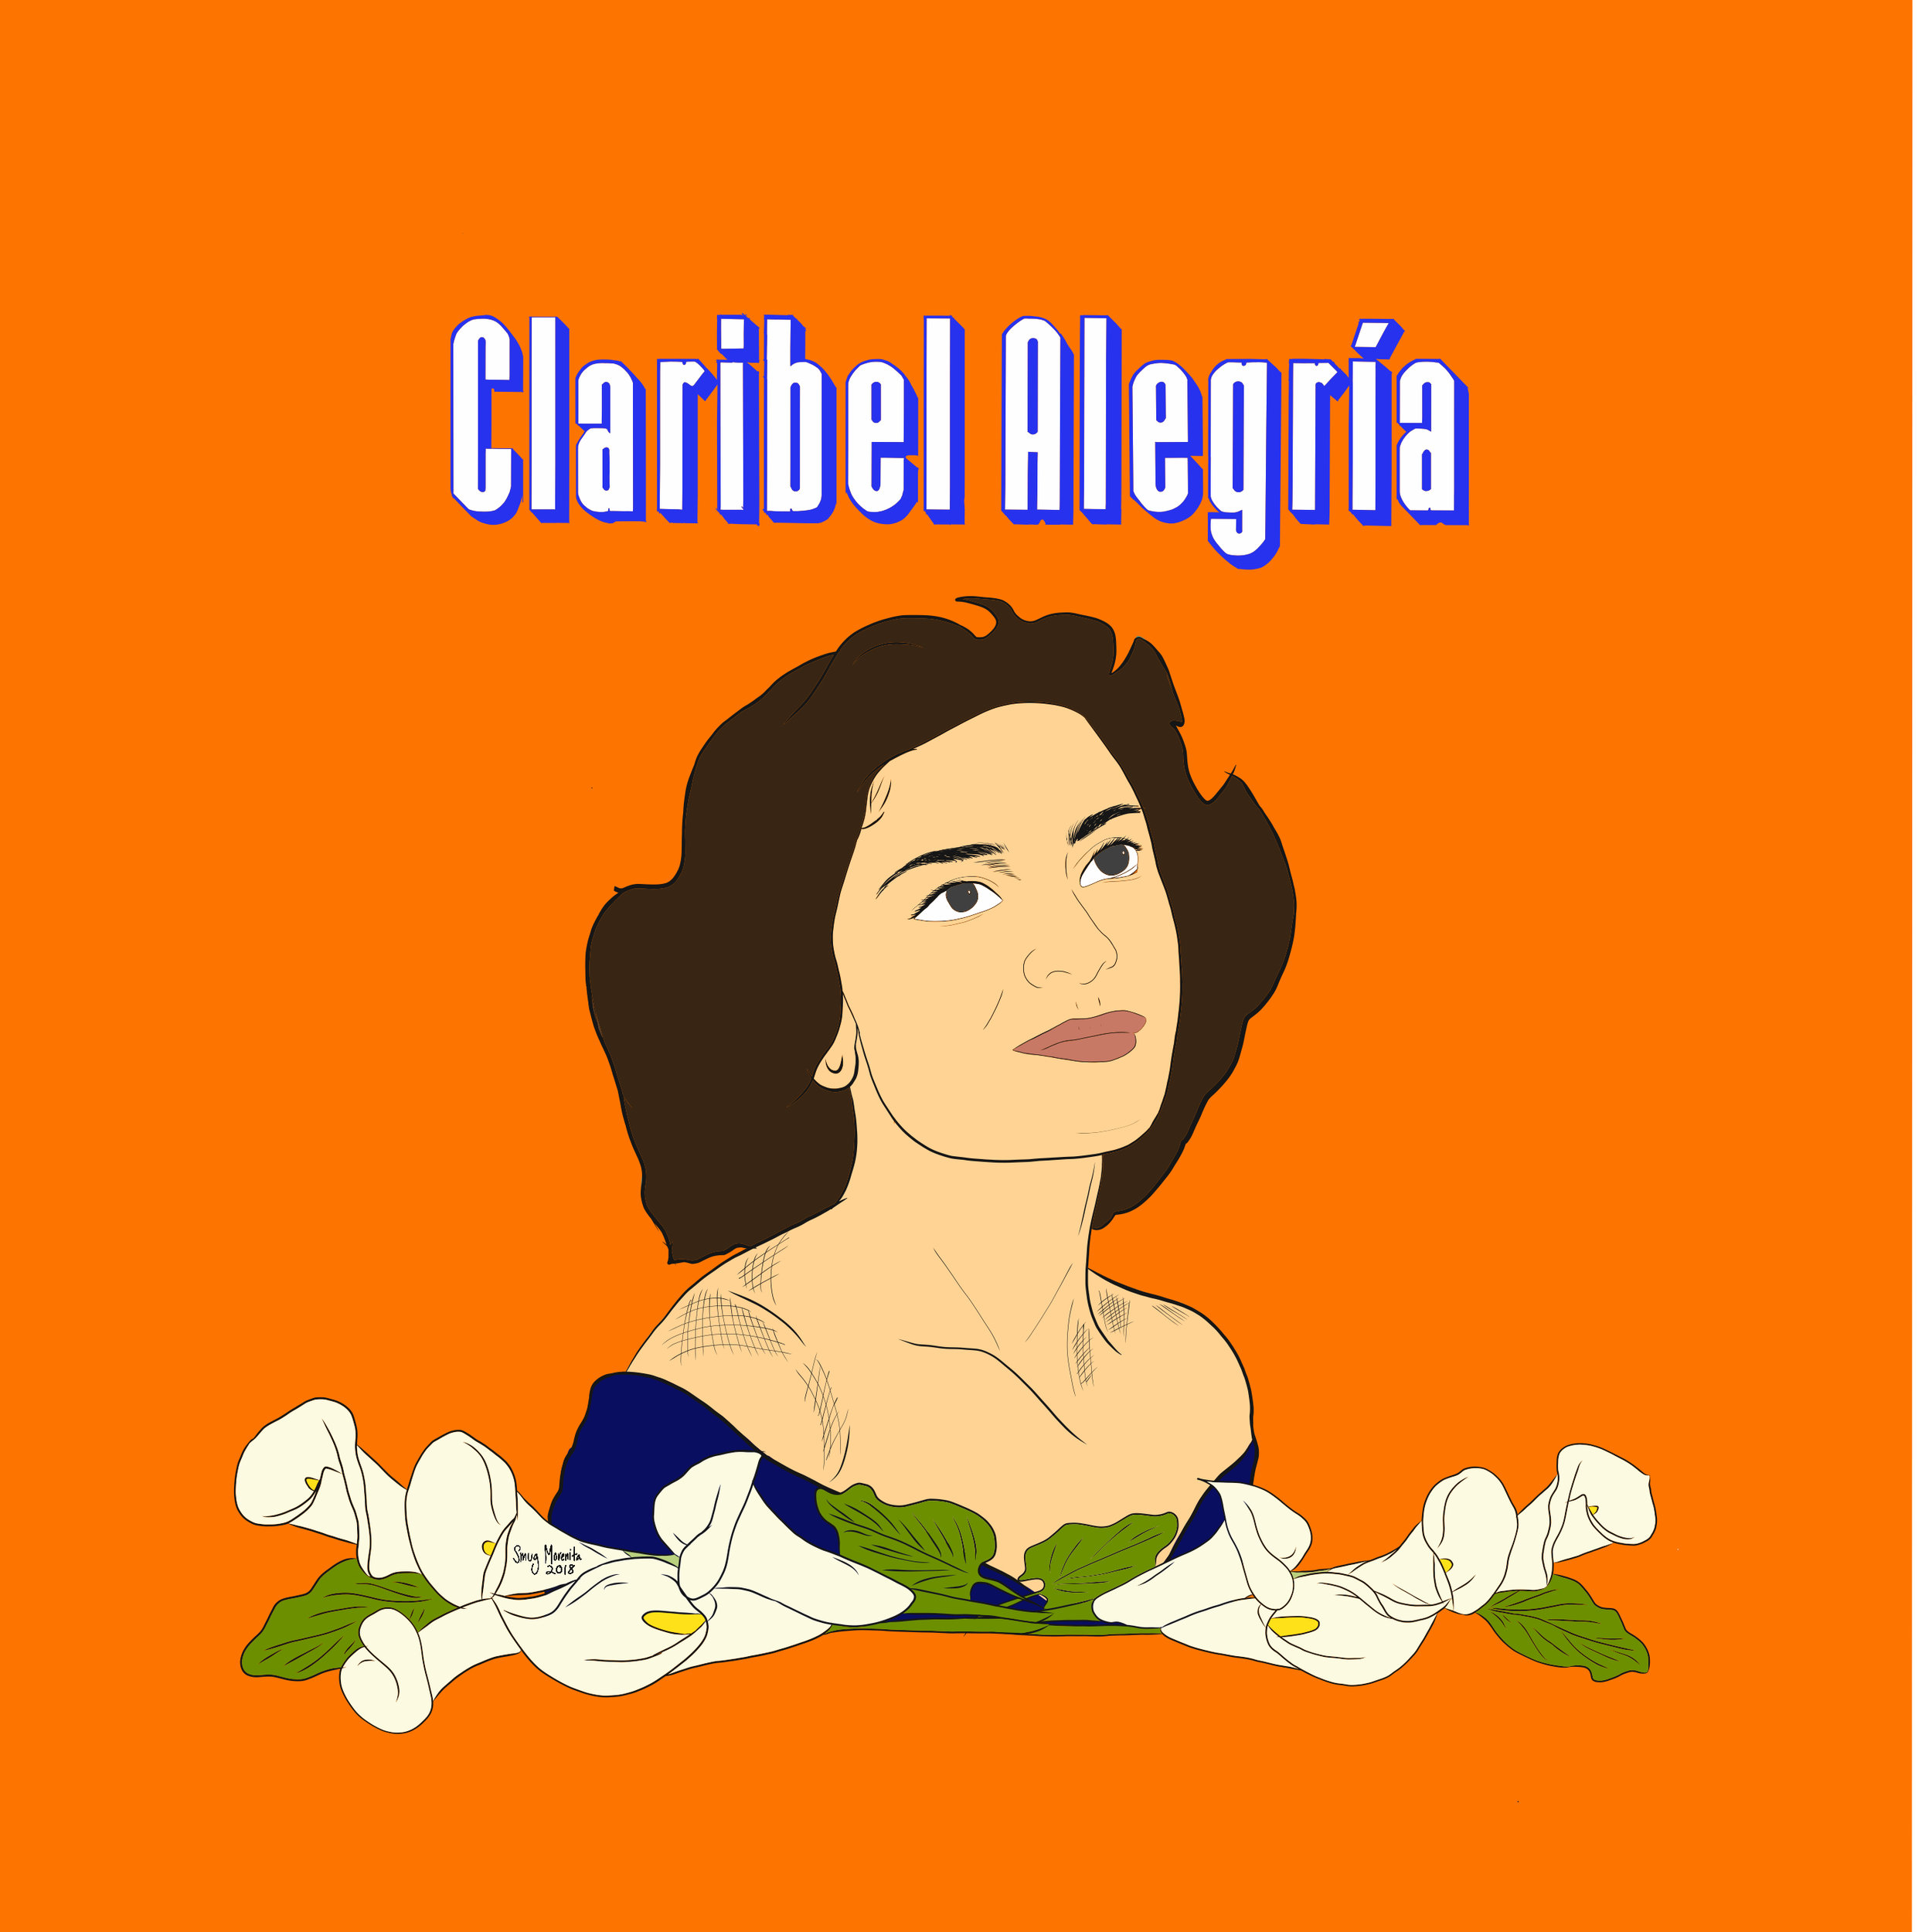 Claribel Isabel Alegría Vides, (May 12, 1924 - Jan. 25, 2018) also known by her pseudonym Claribel Alegría was a Nicaraguan-Salvadoran poet,essayist, journalism & novelist!! She's a fixture of contemporary Central American literature.  Born in Estelí, Nicaragua, she grew up in Santa Ana, El Salvador where her mother was from after her father was sent into exile for protesting human rights violations during the U.S. occupation of Nicaragua. In 1943 she moved to the U.S. & in 1948 graduated with a B.A. from  @gwuniversity . She returned to Nicaragua in 1985 to aide in the reconstruction of 🇳🇮. She was in love with Nicaragua & left her 💛 in El Salvador. Took inspo from Cola Champagne to honor her Salvi roots & my early childhood memories.